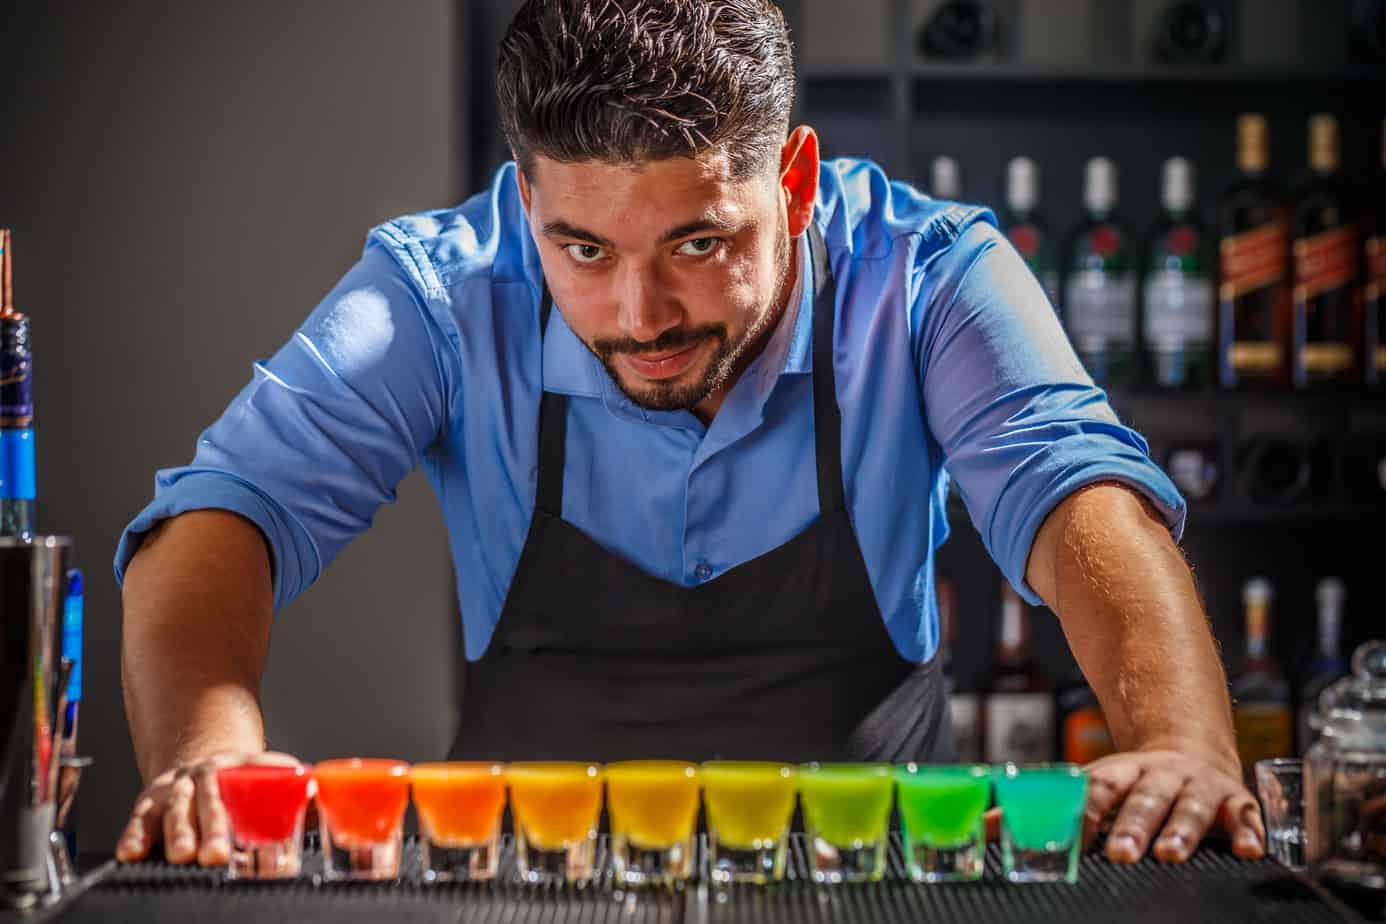 Barman is posing with his rainbow cocktail creation